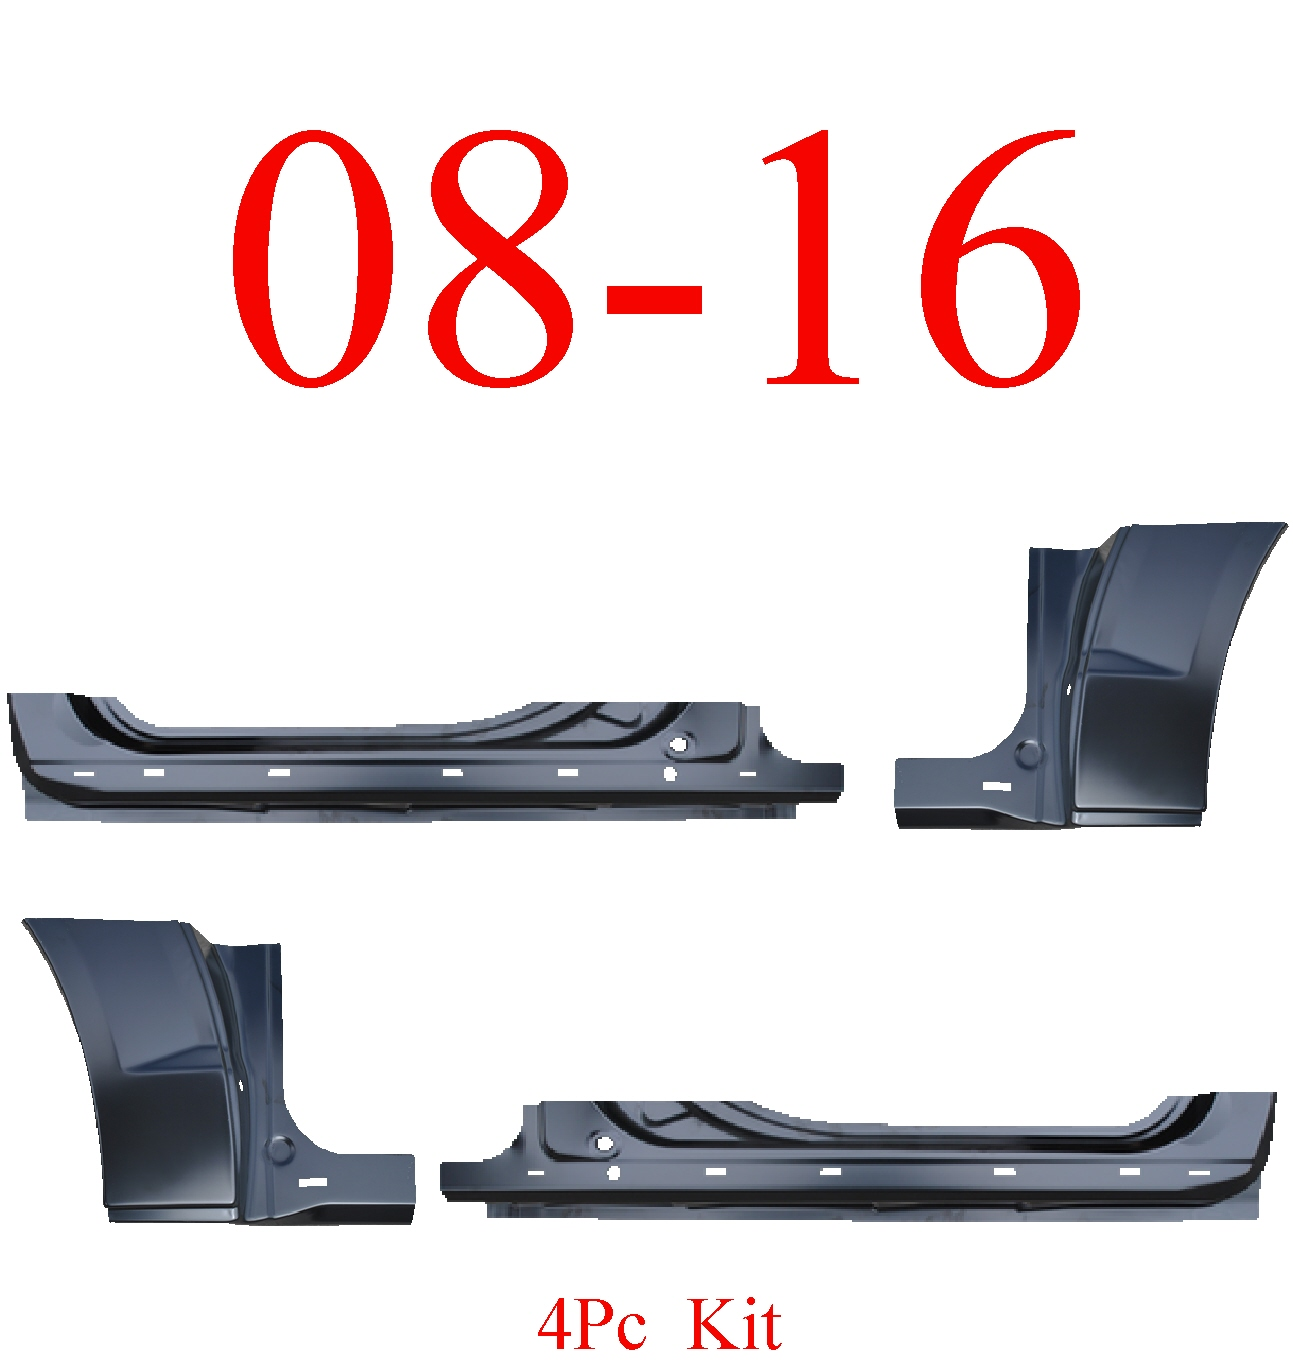 08-16 Grand Caravan 4Pc Extended Rocker Panel & Dog Leg Kit